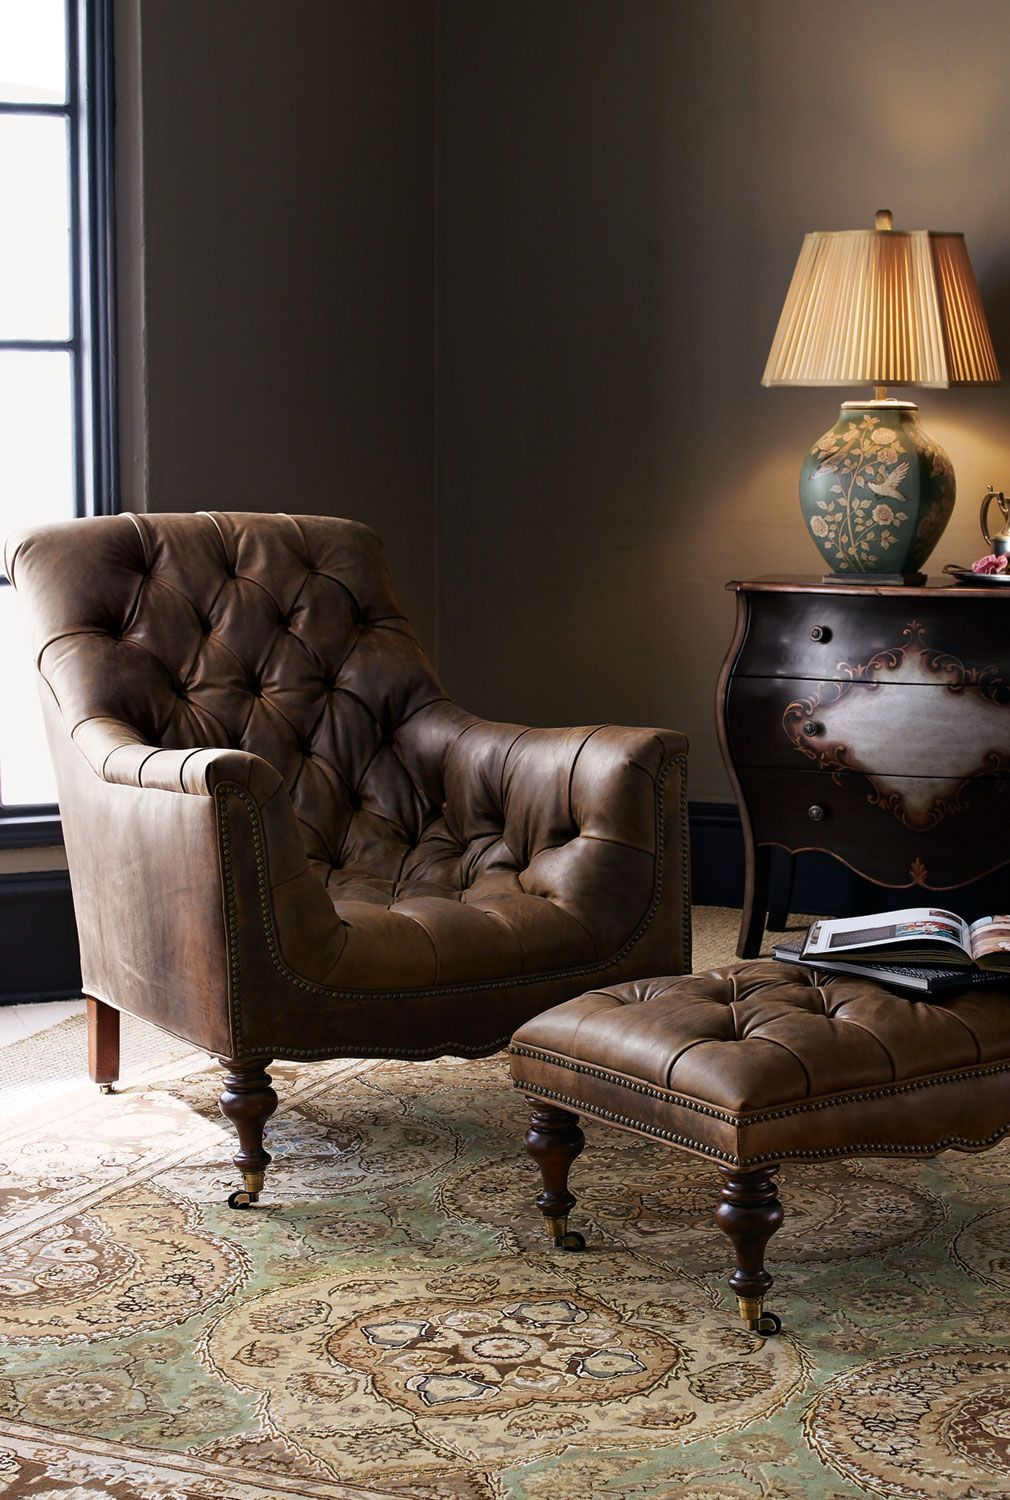 Home Decor Living room furniture, Living room chairs